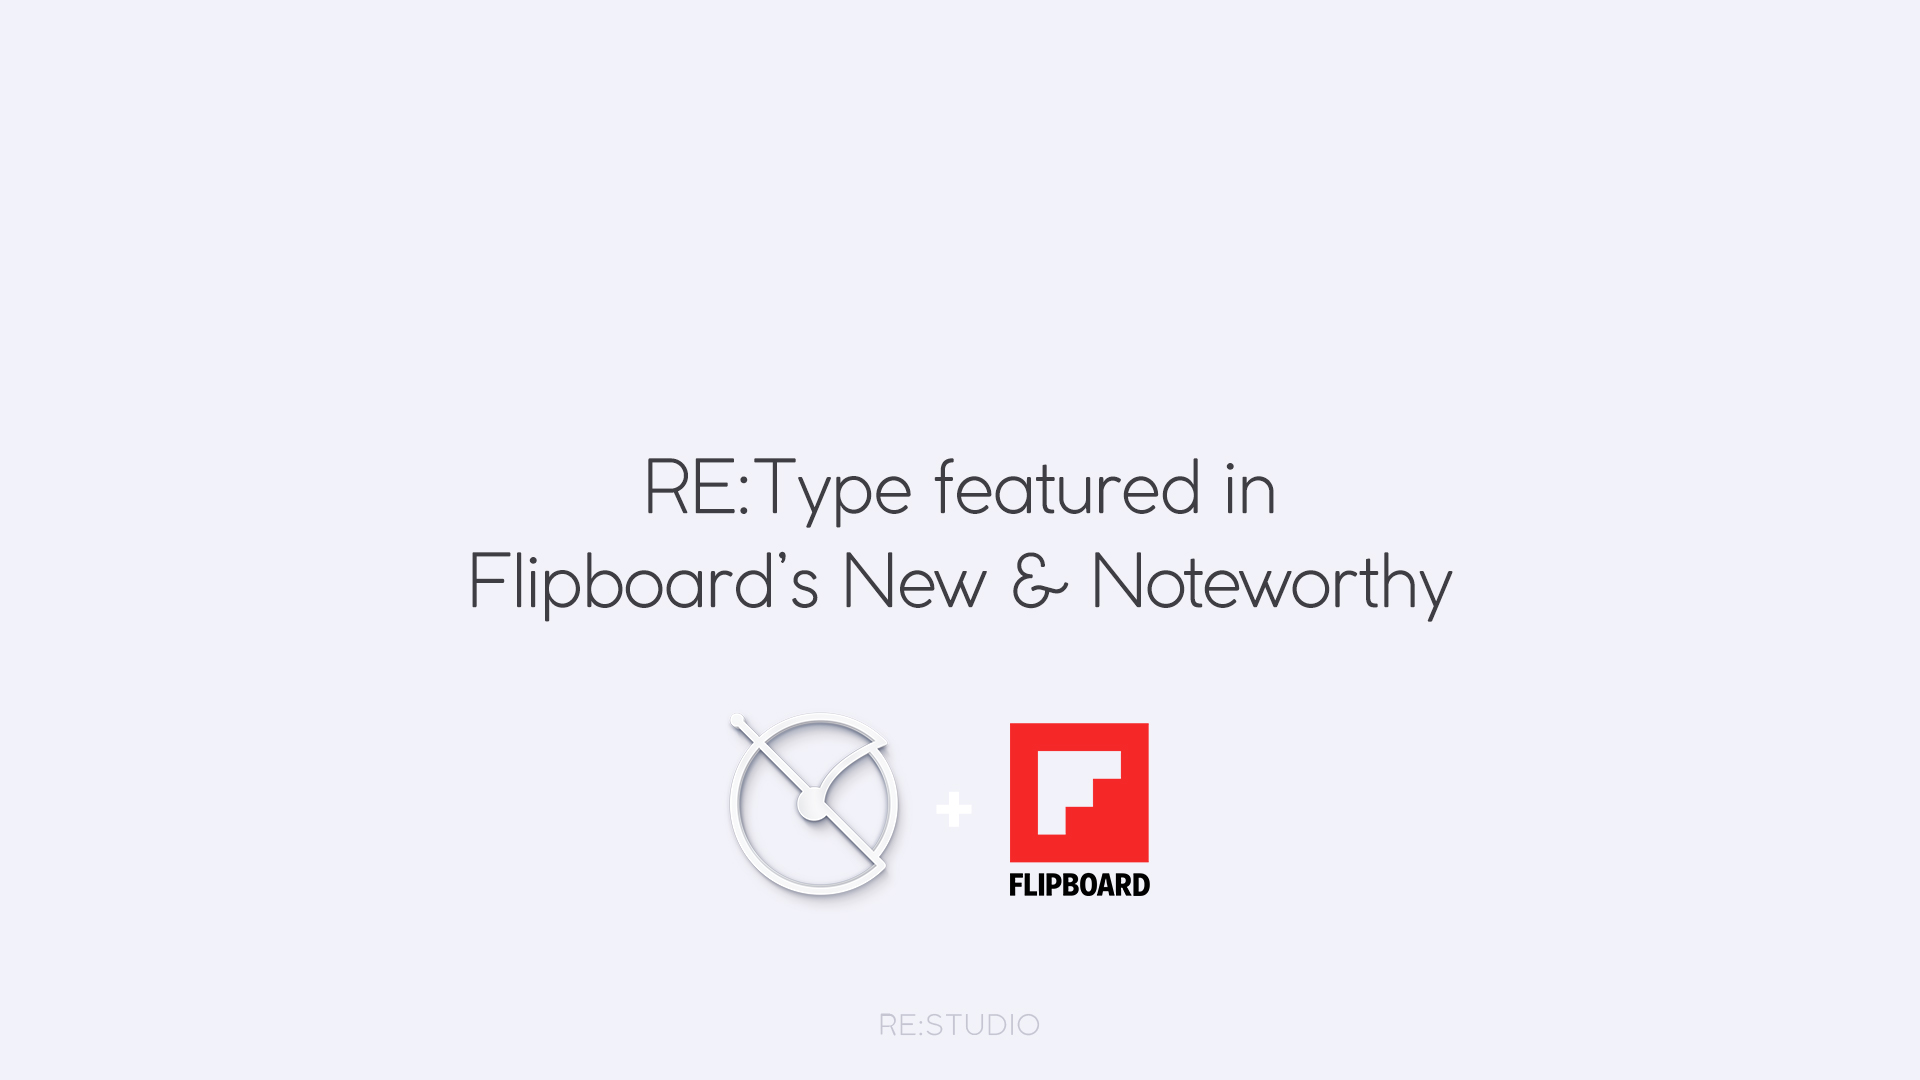 RE:Type added to New and Noteworthy on Flipboard